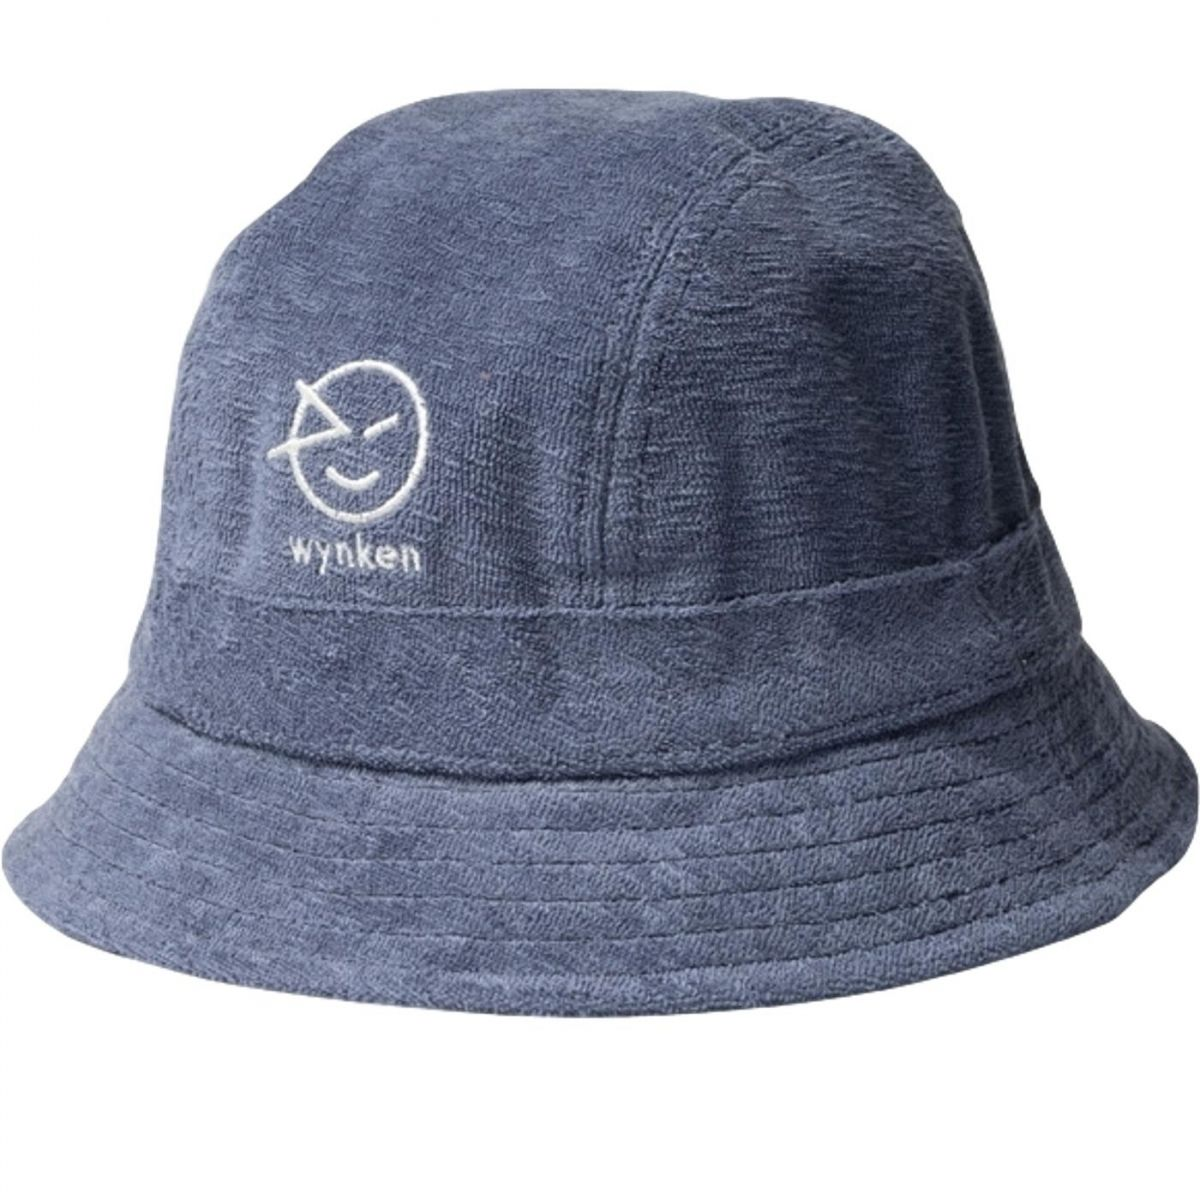 Wynken - Havana Hat Blue Terry blue - 1